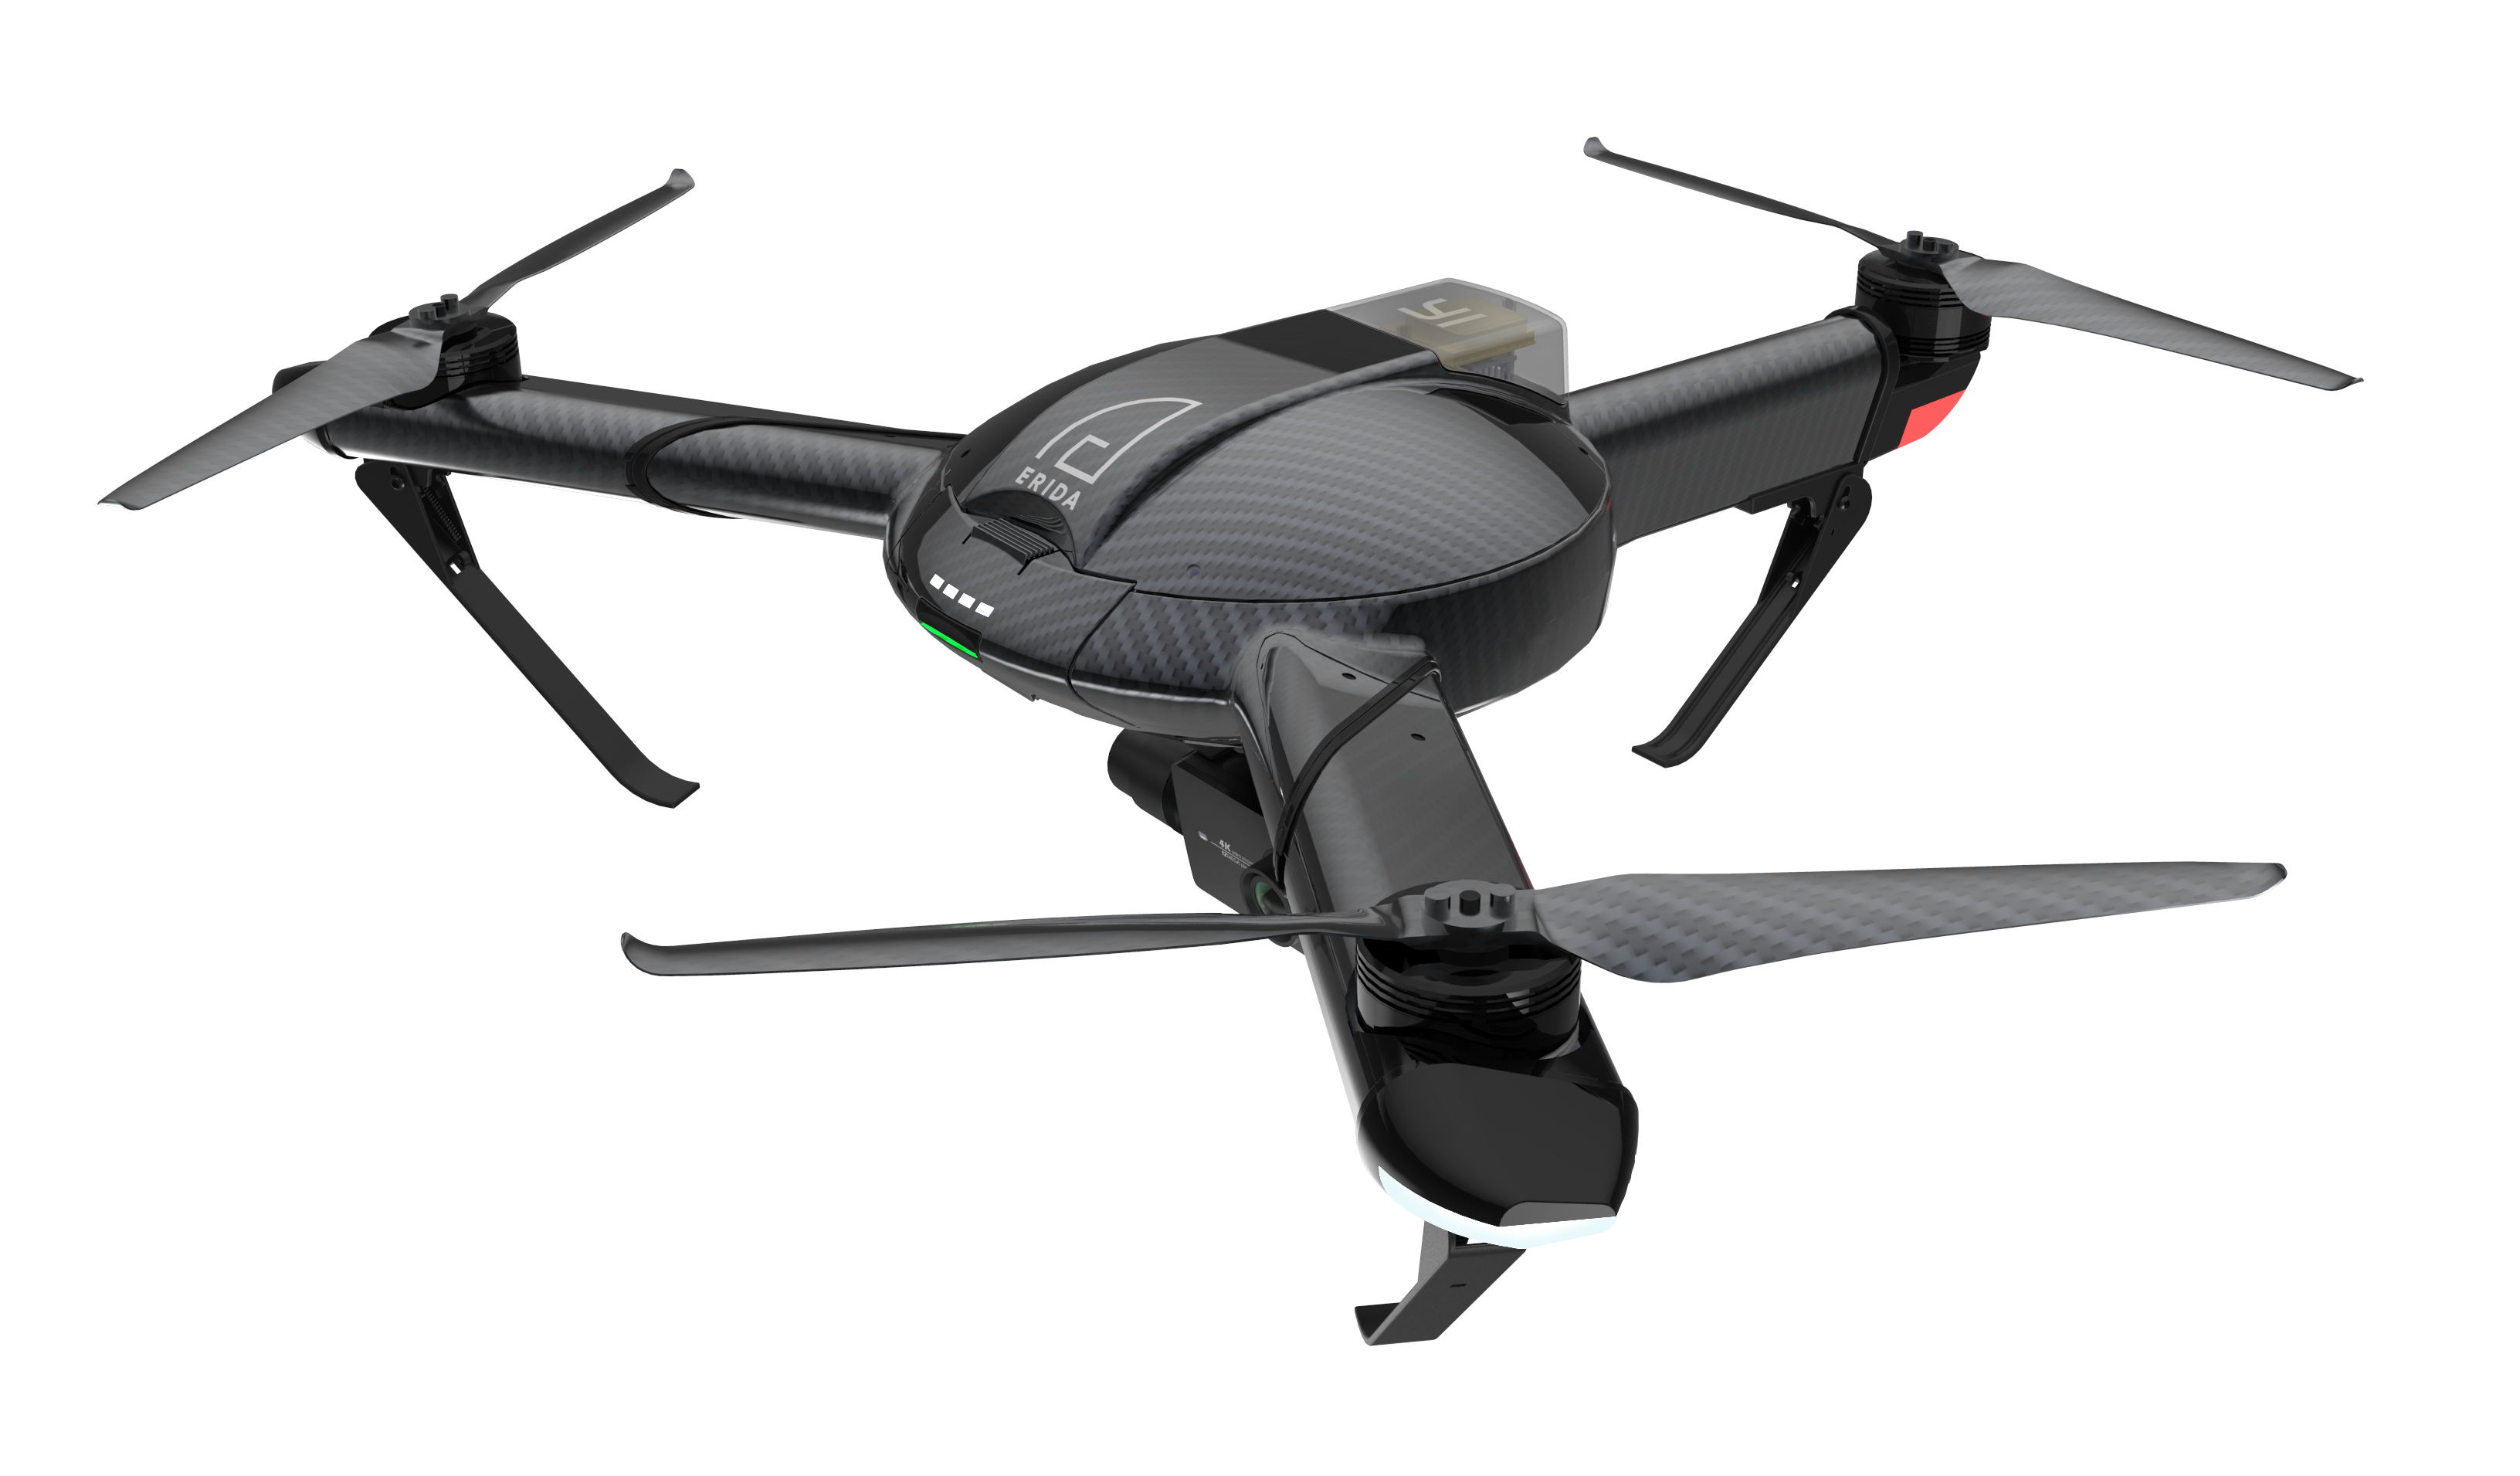 drone-aircraf-high-quality-png-12